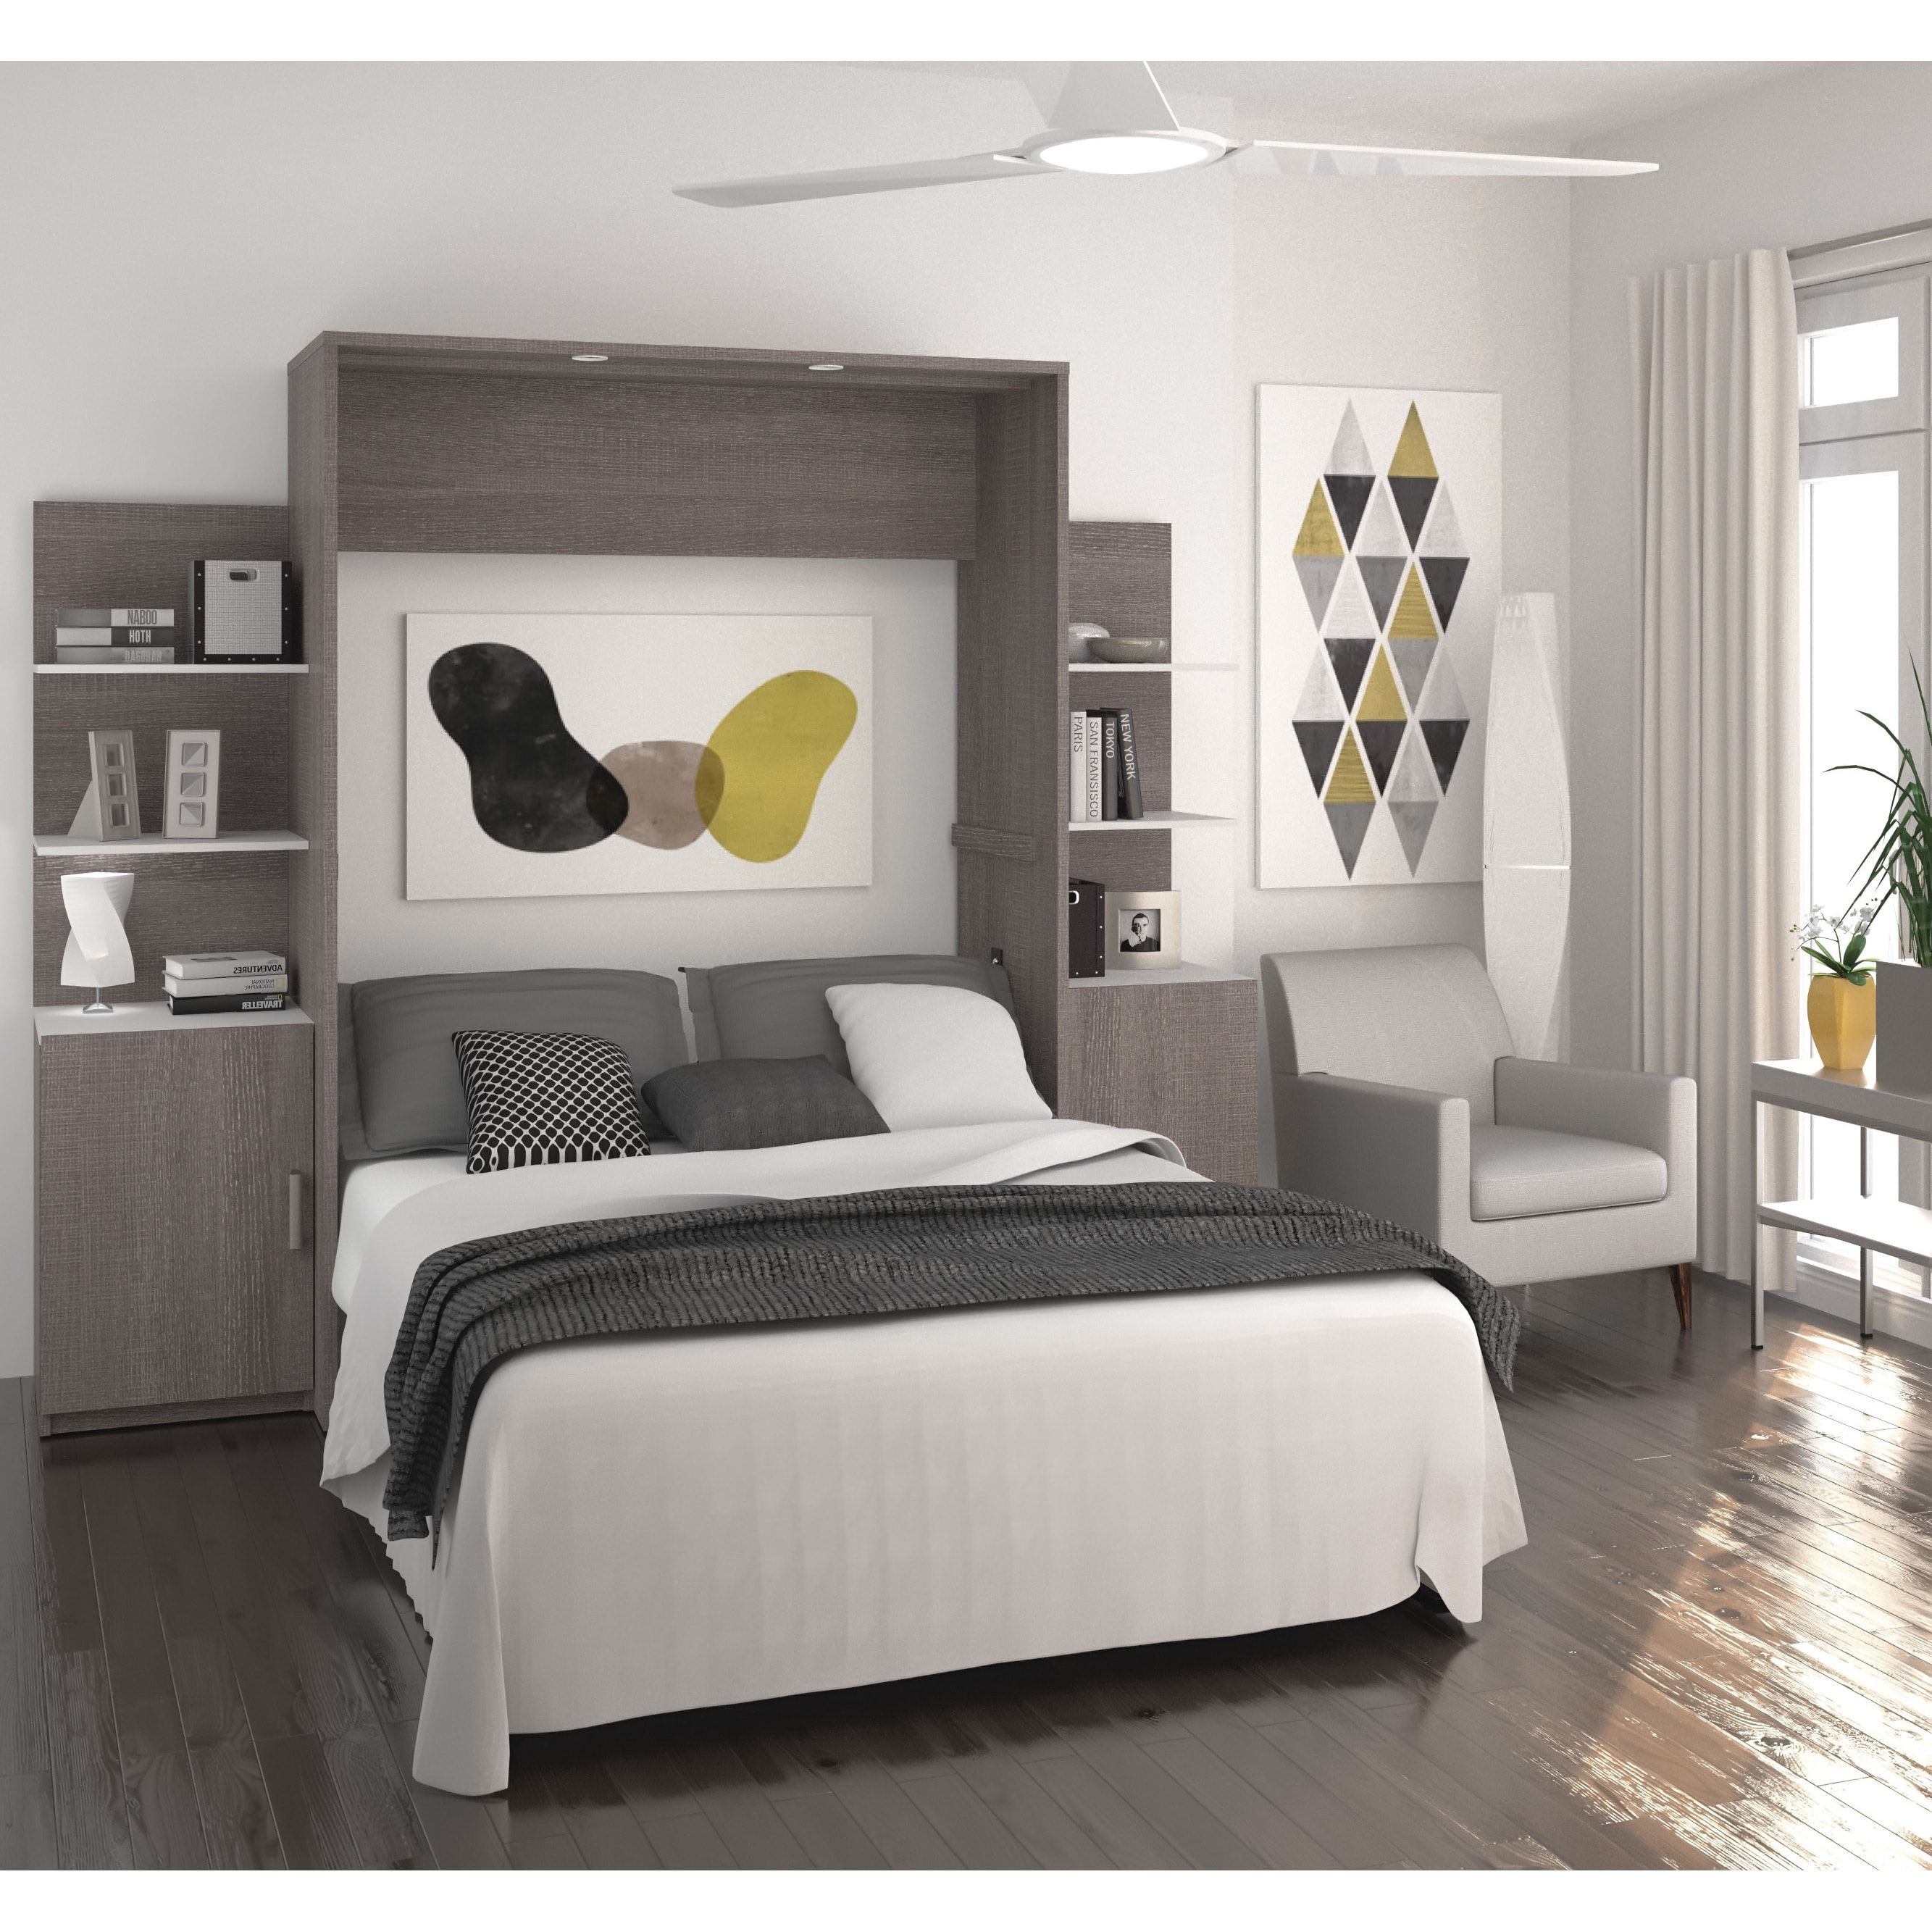 Cielo by Bestar Deluxe 98inch Full Wall Bed kit Free